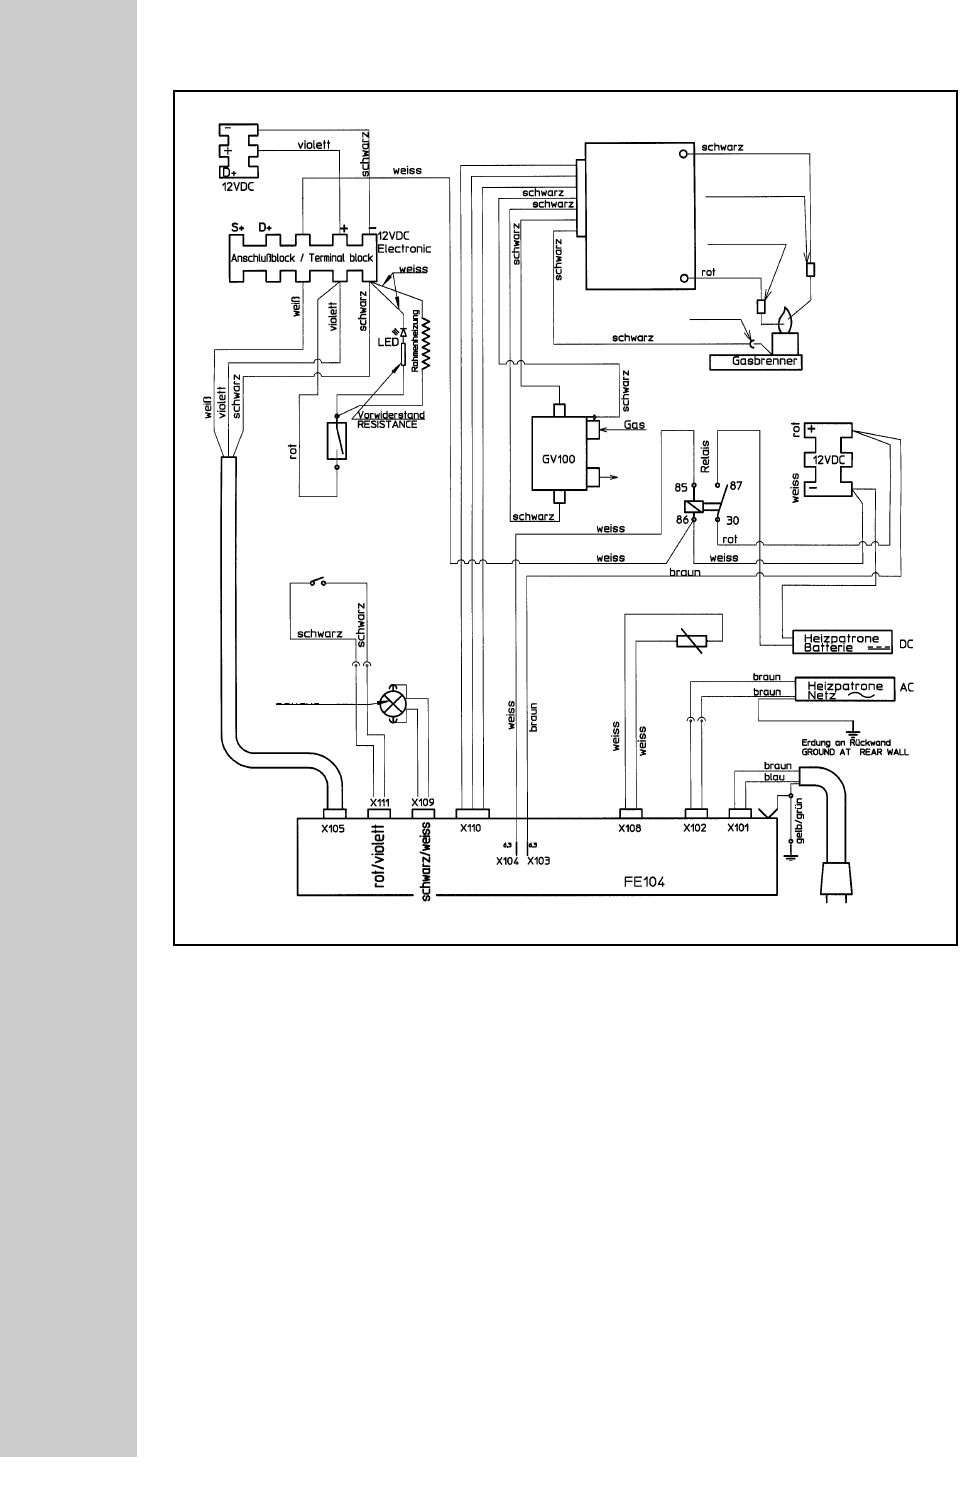 Wiring Diagram For Dometic 3313191 Dometic A C Thermostat